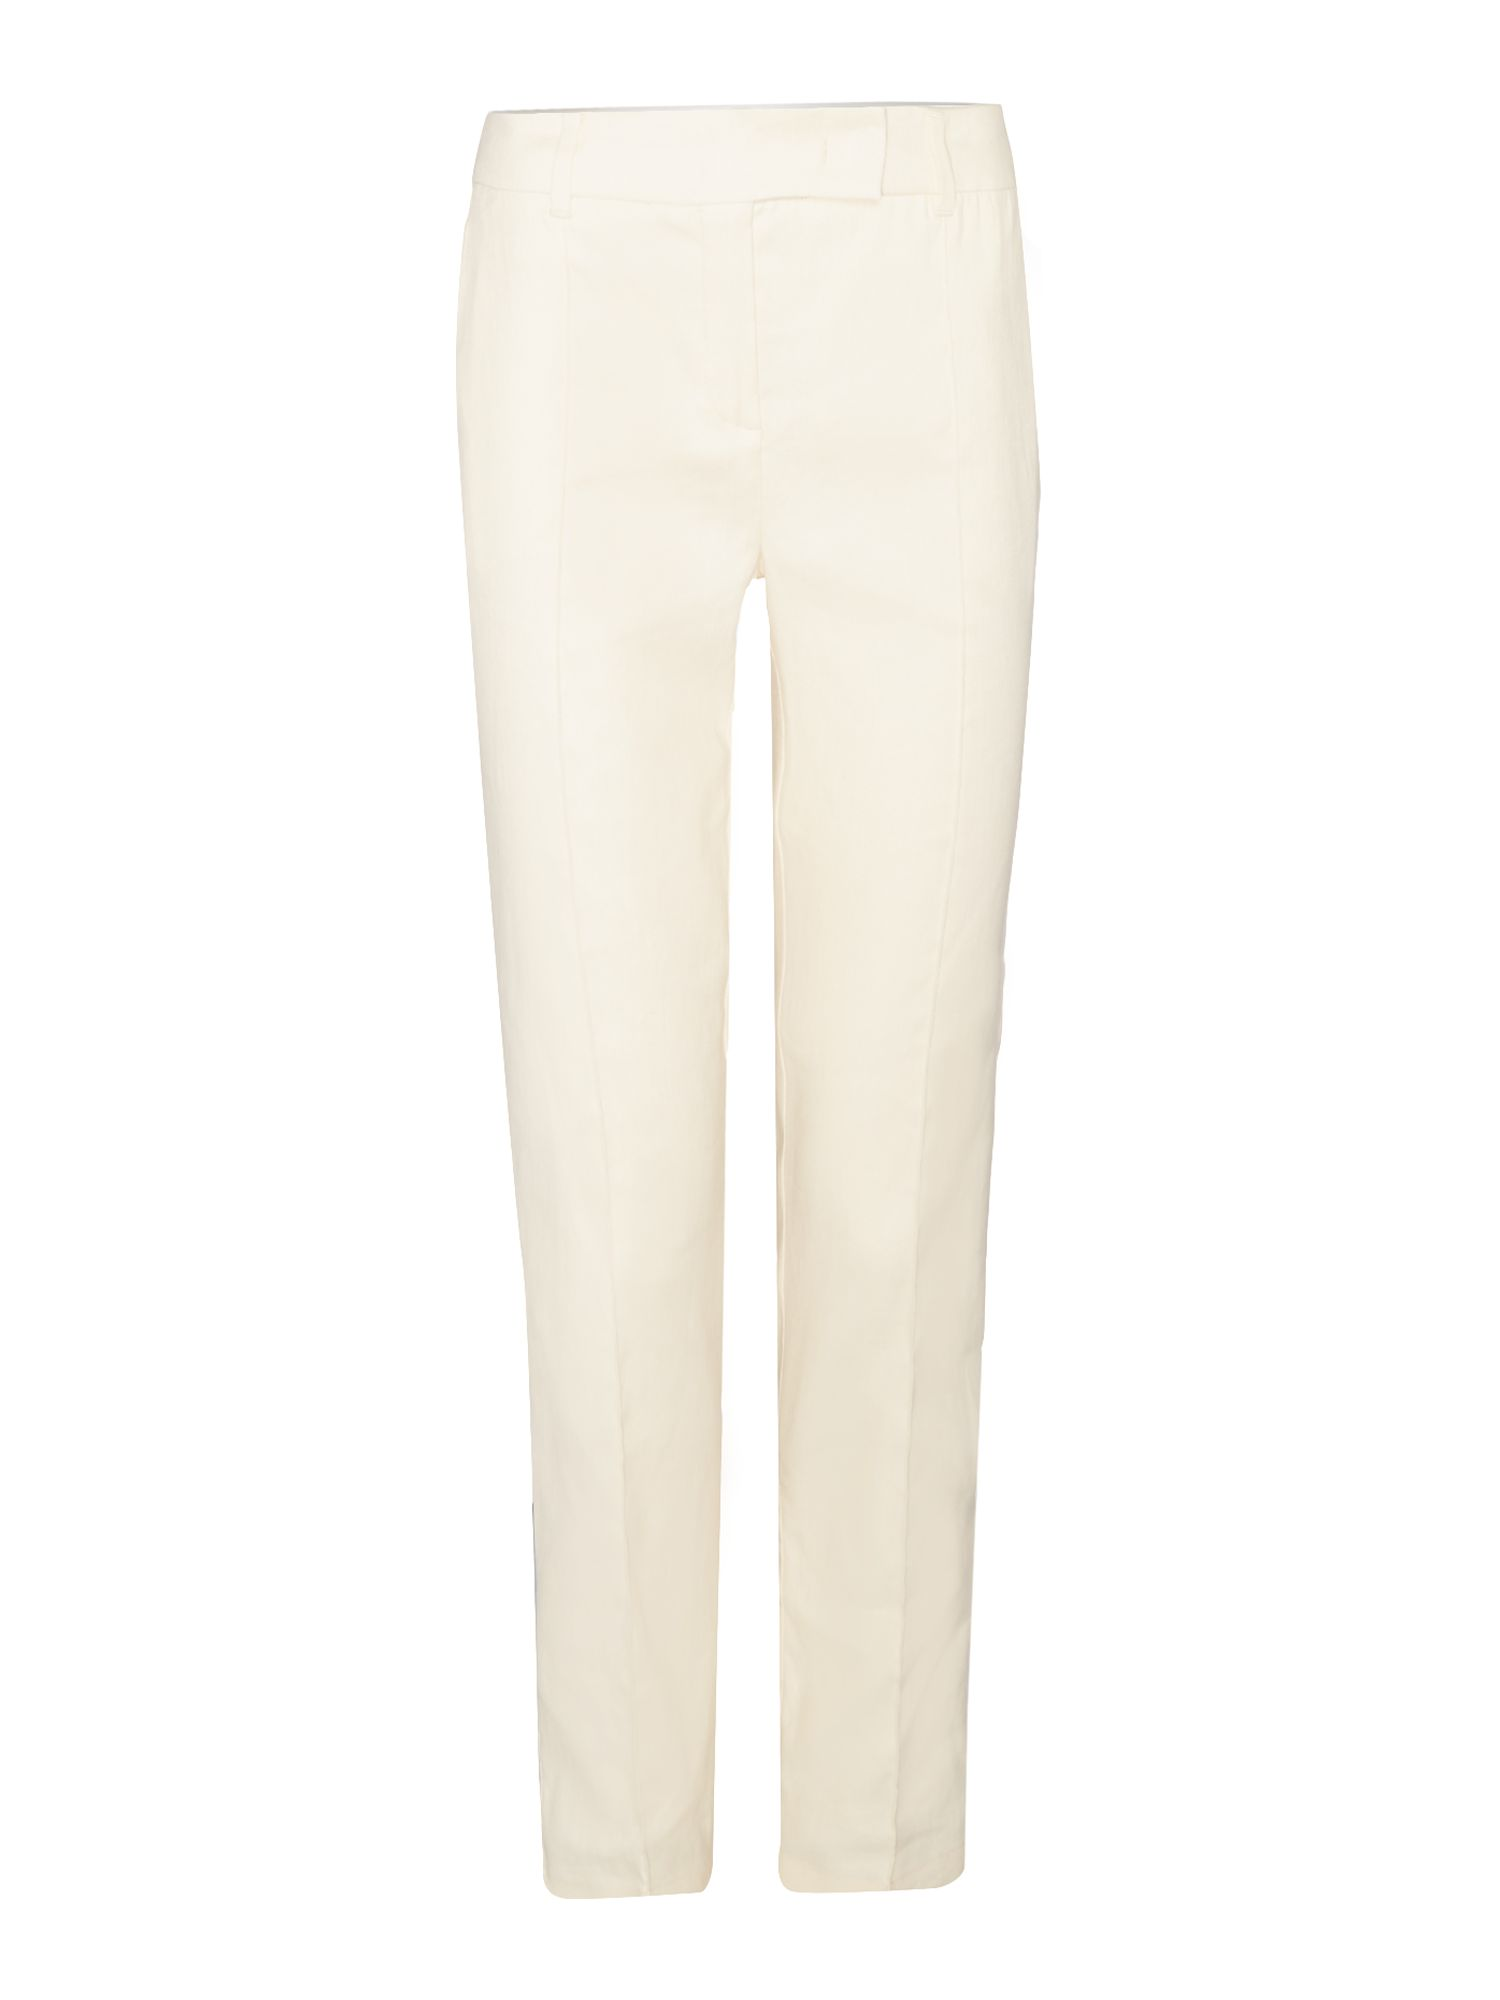 Marella COMUNE Slim leg linen mix trouser, Cream